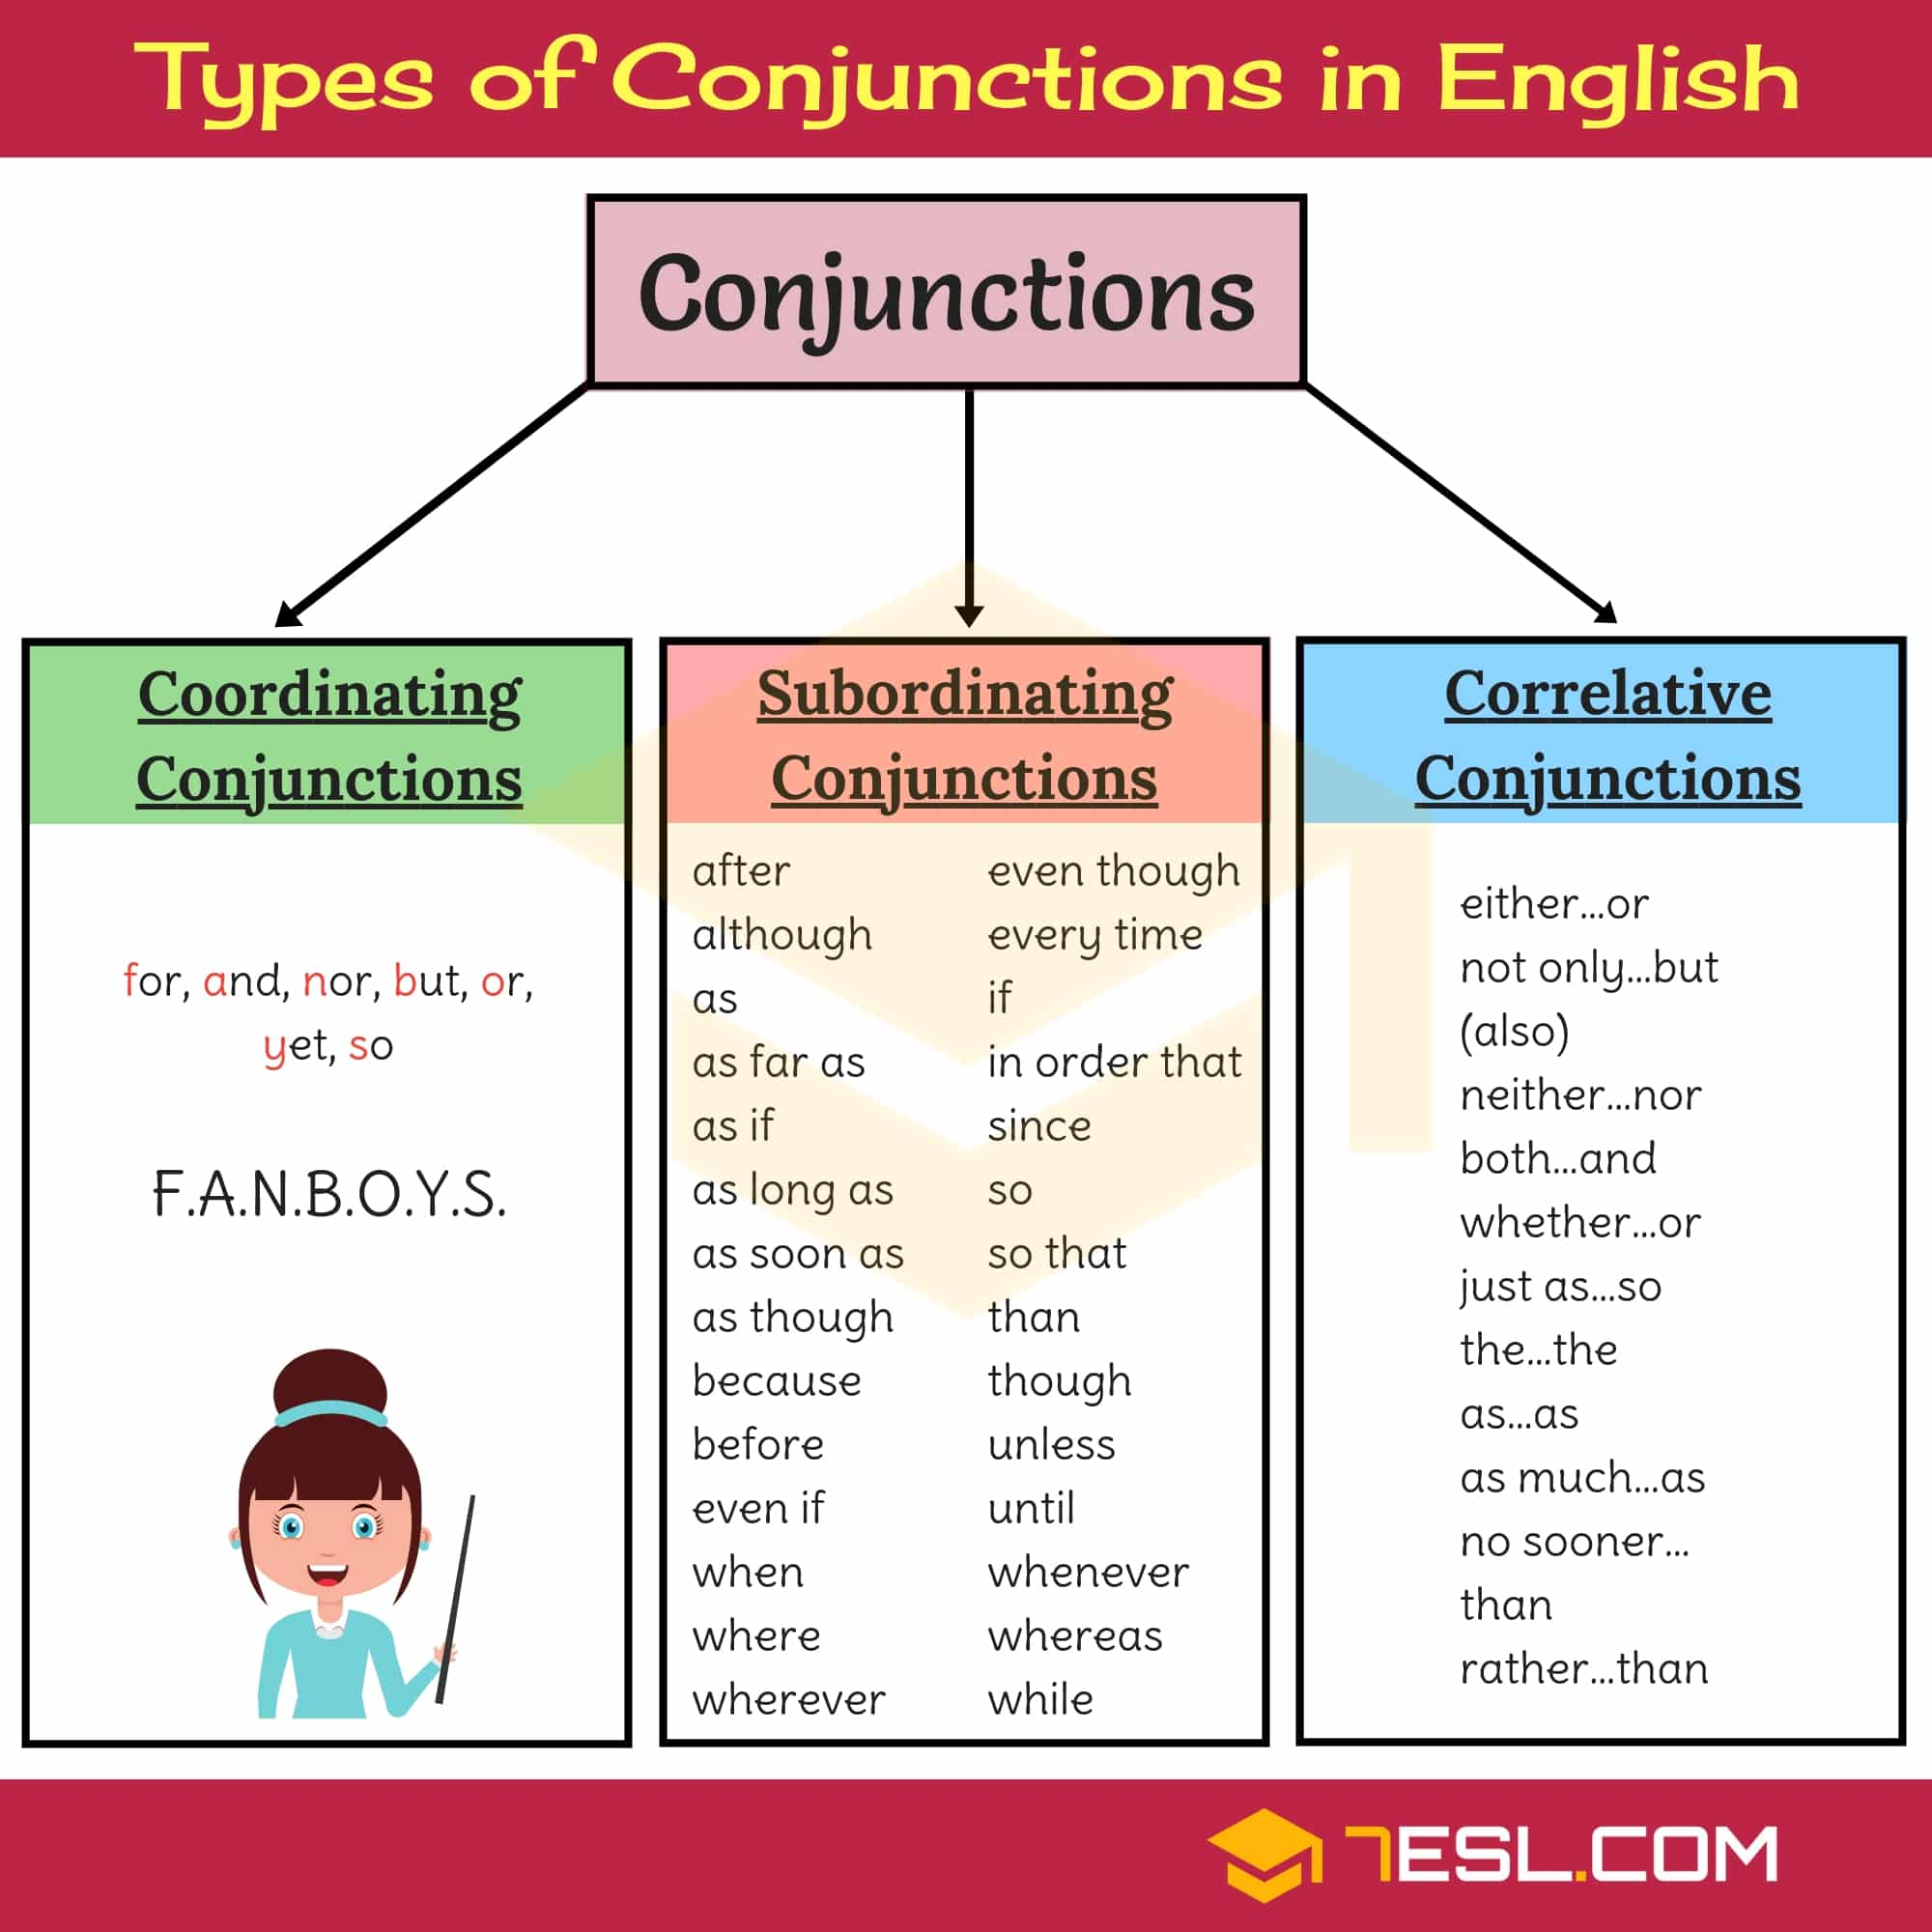 English Conjunctions!!! Learn useful list of conjunctions in English with different types and example sentences.